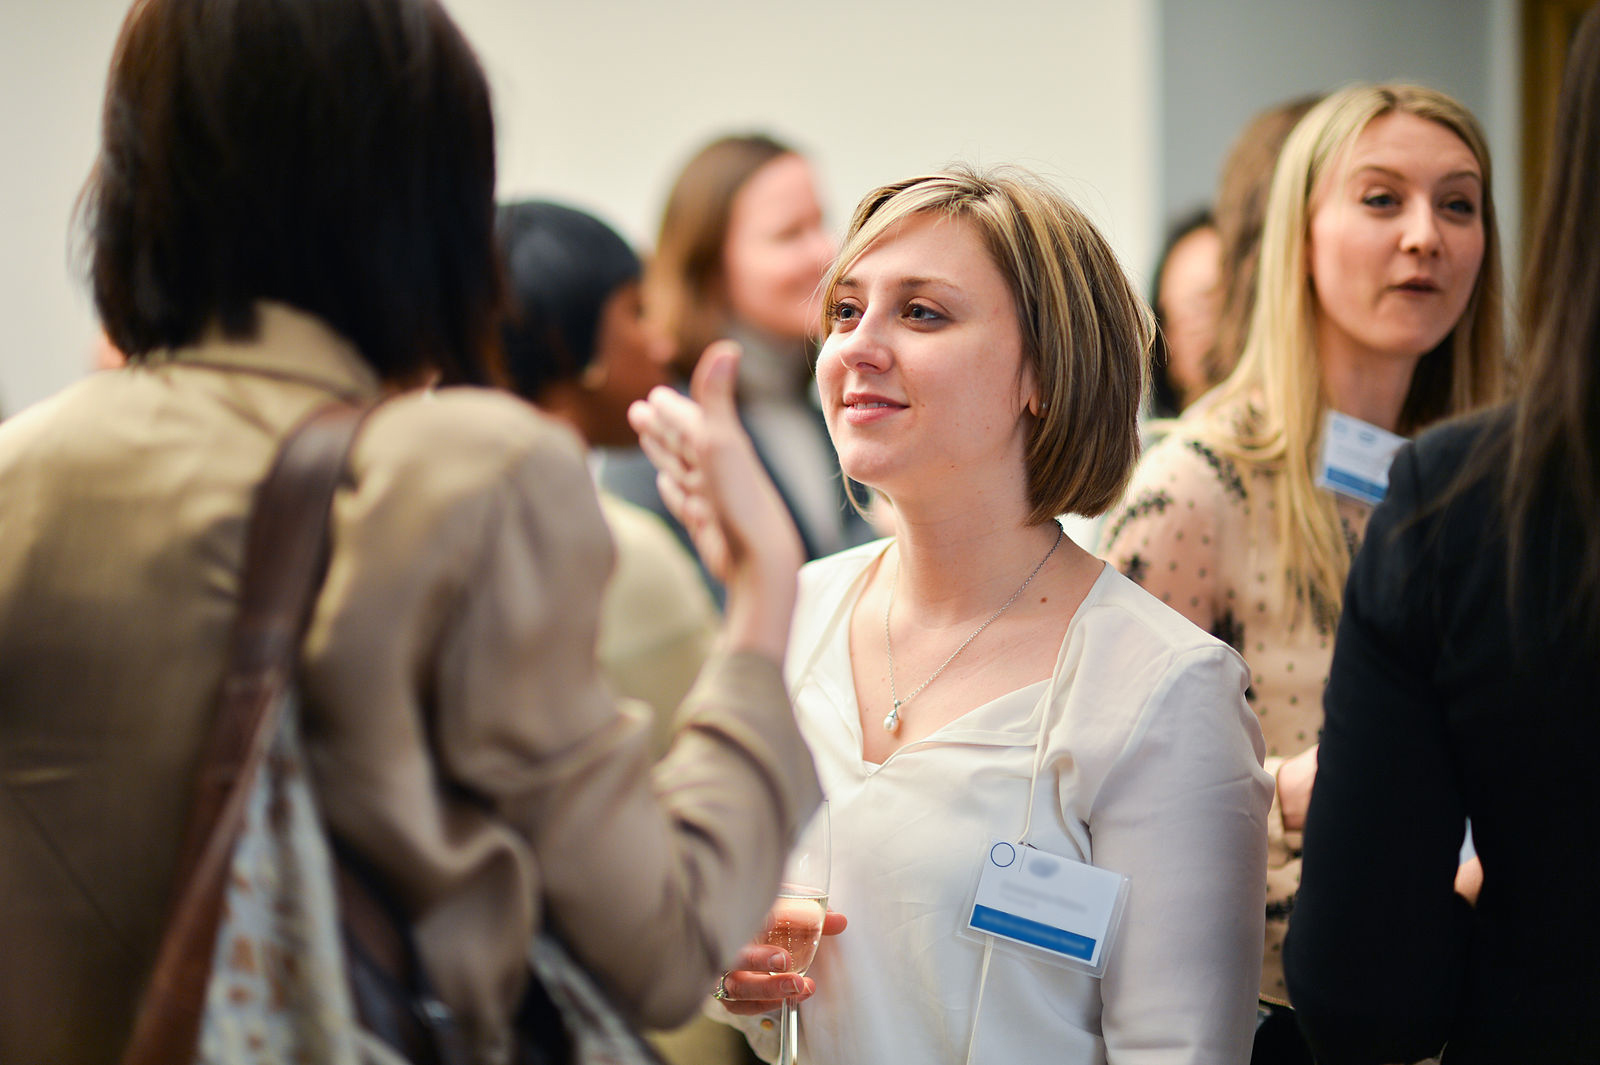 Networking: How to Hit Up Your Personal Contacts Without Screwing Up Your Friendships